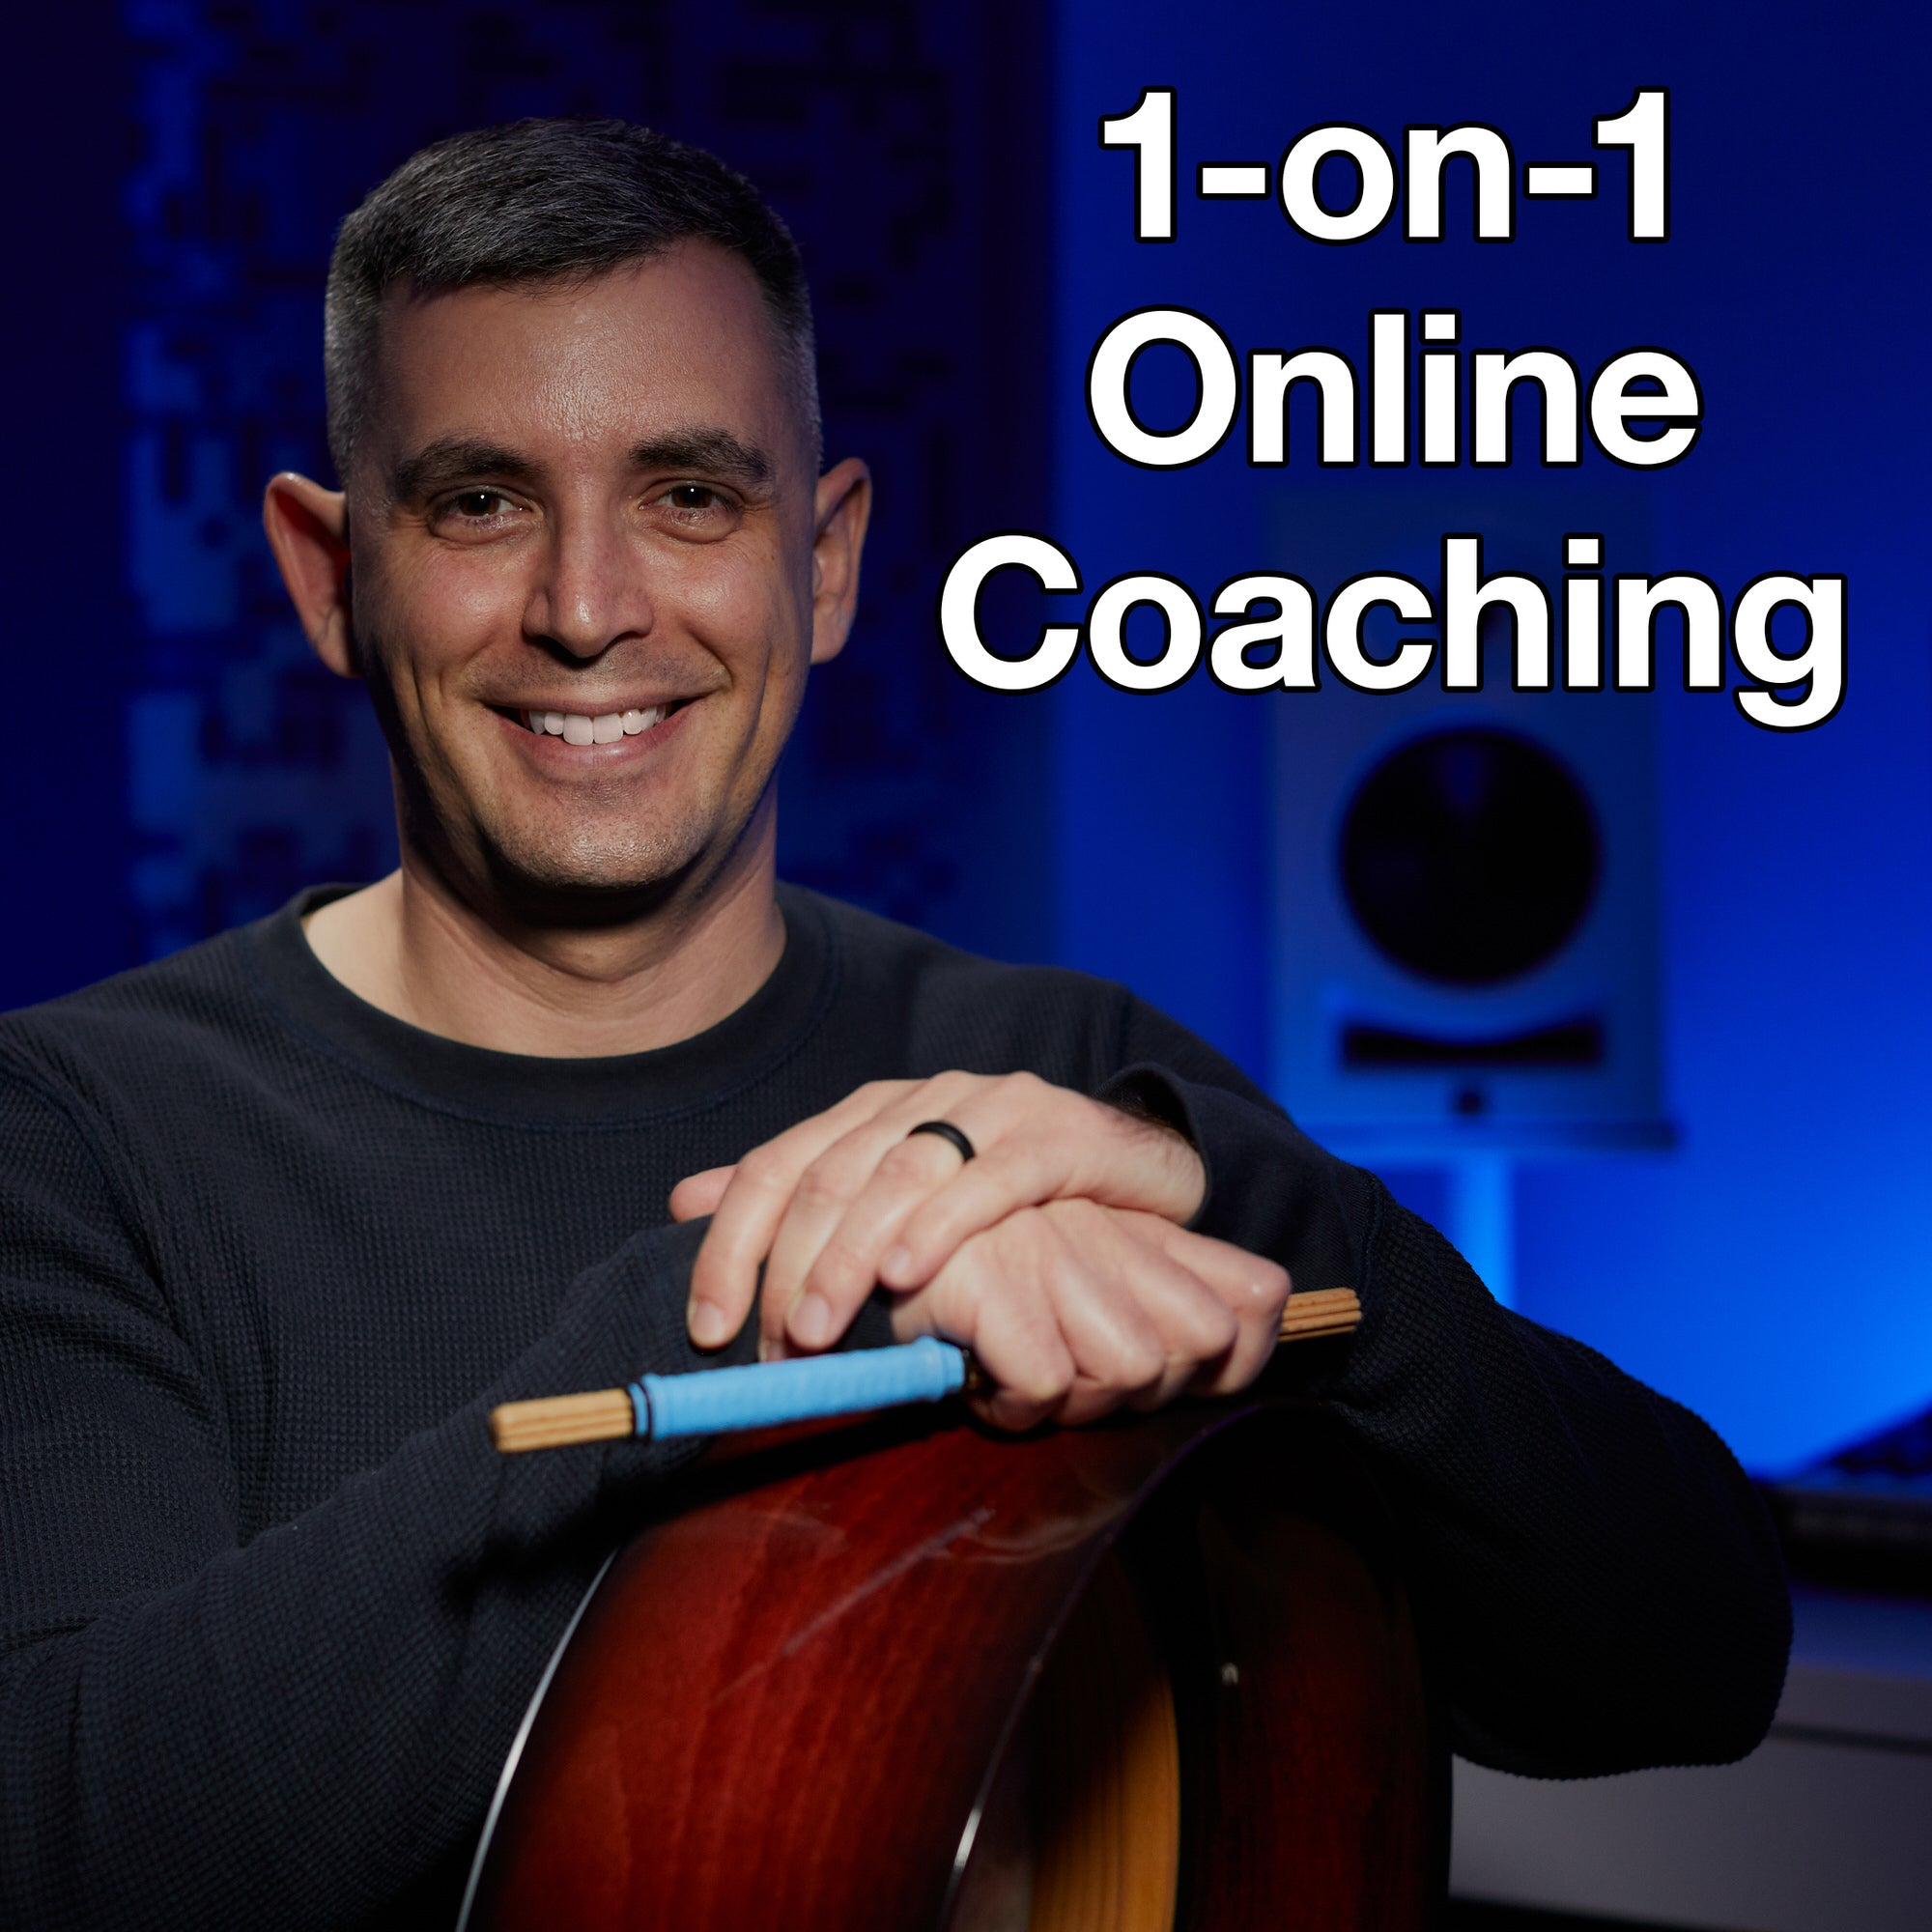 1-on-1 Online Coaching with Matt Bell